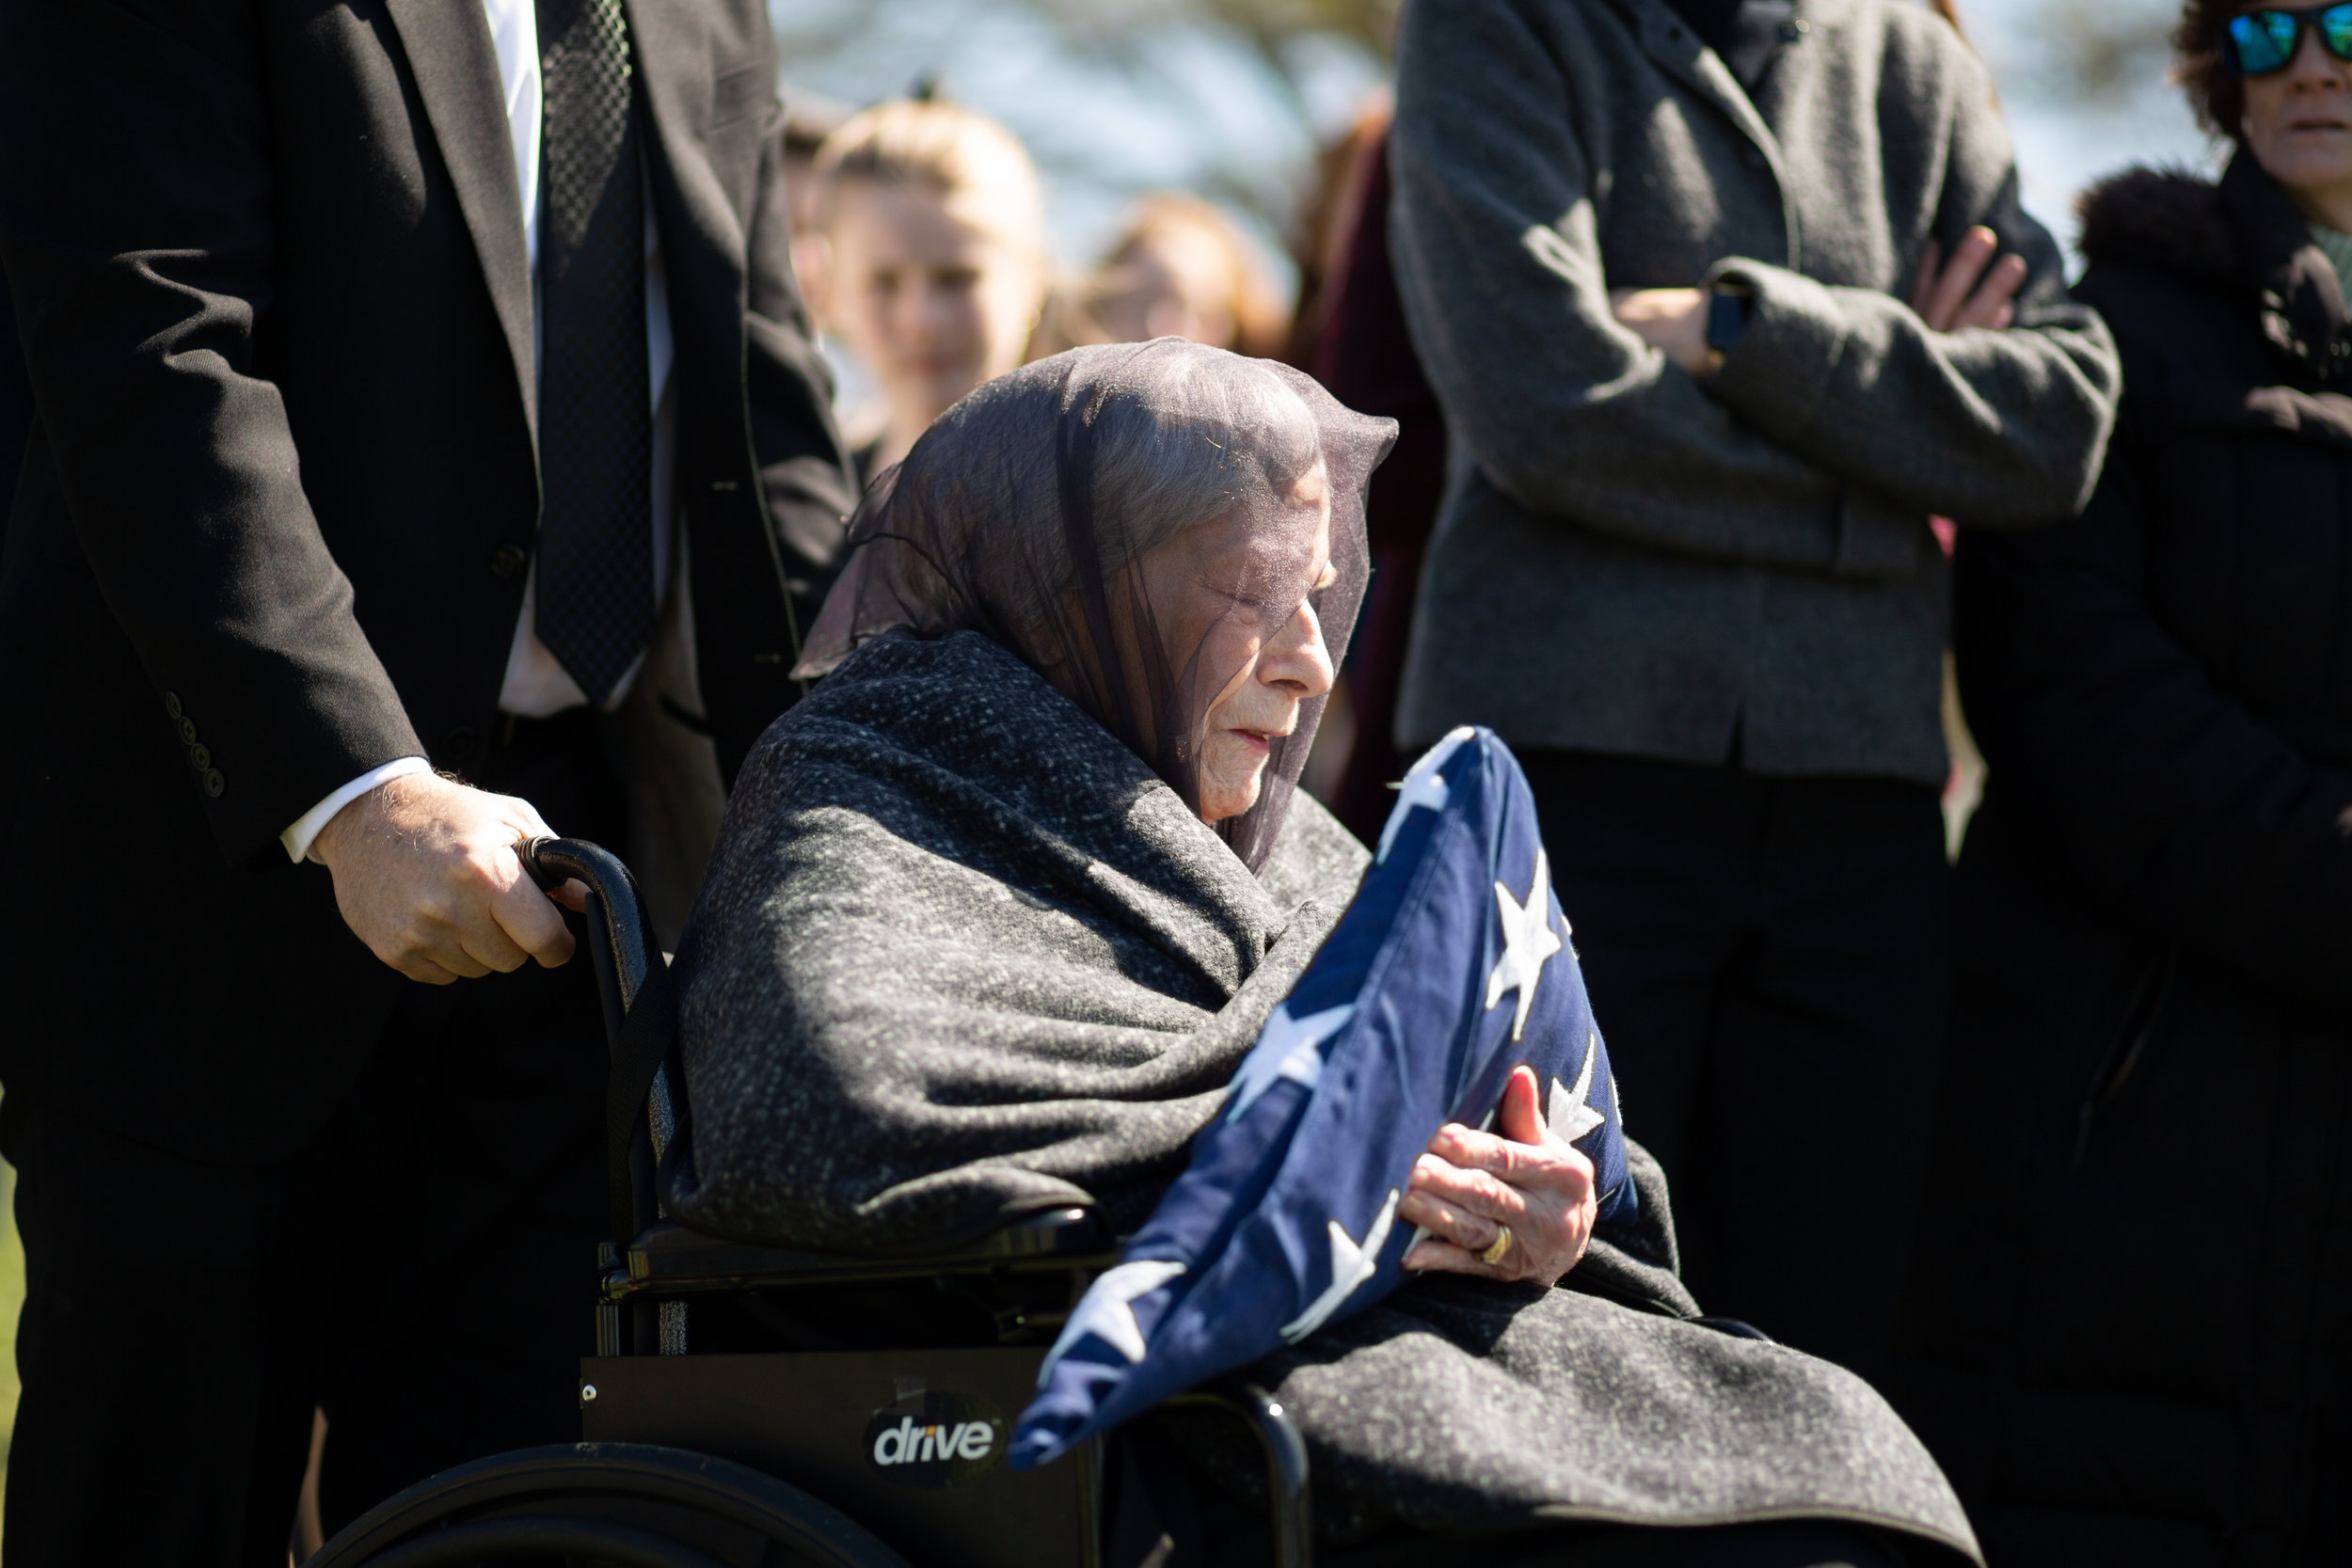 WASHINGTON D.C., April 21, 2018-- A widow clutches the flag as she gives her last goodbyes to a dearly missed husband.  Photo by Taylor Mickal